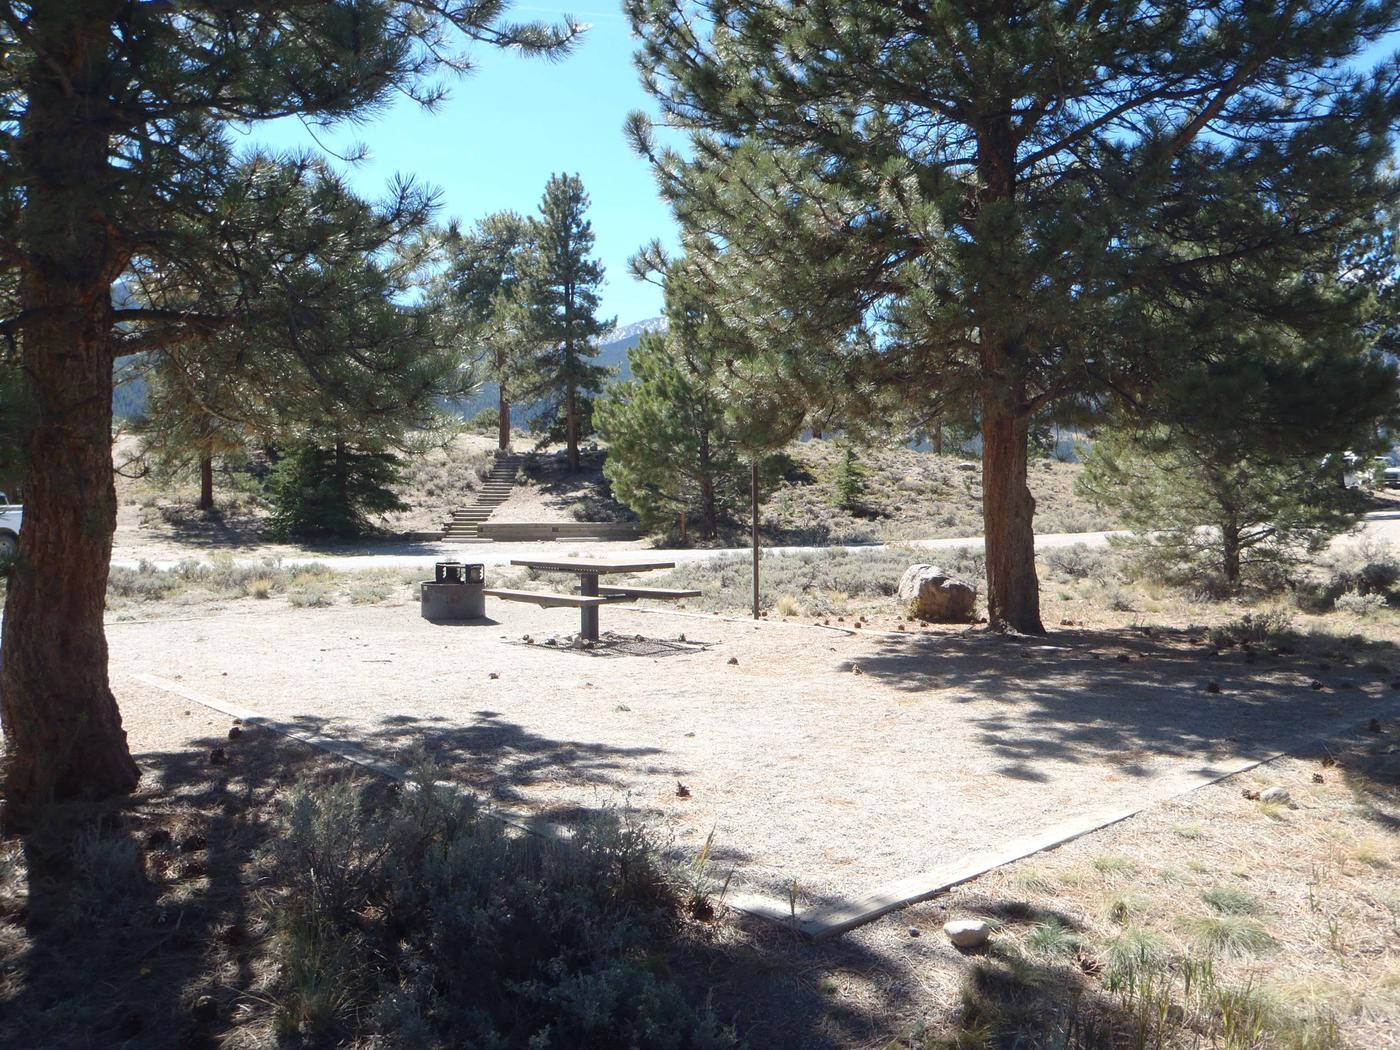 White Star Campground, site 13 picnic table and fire ring 2